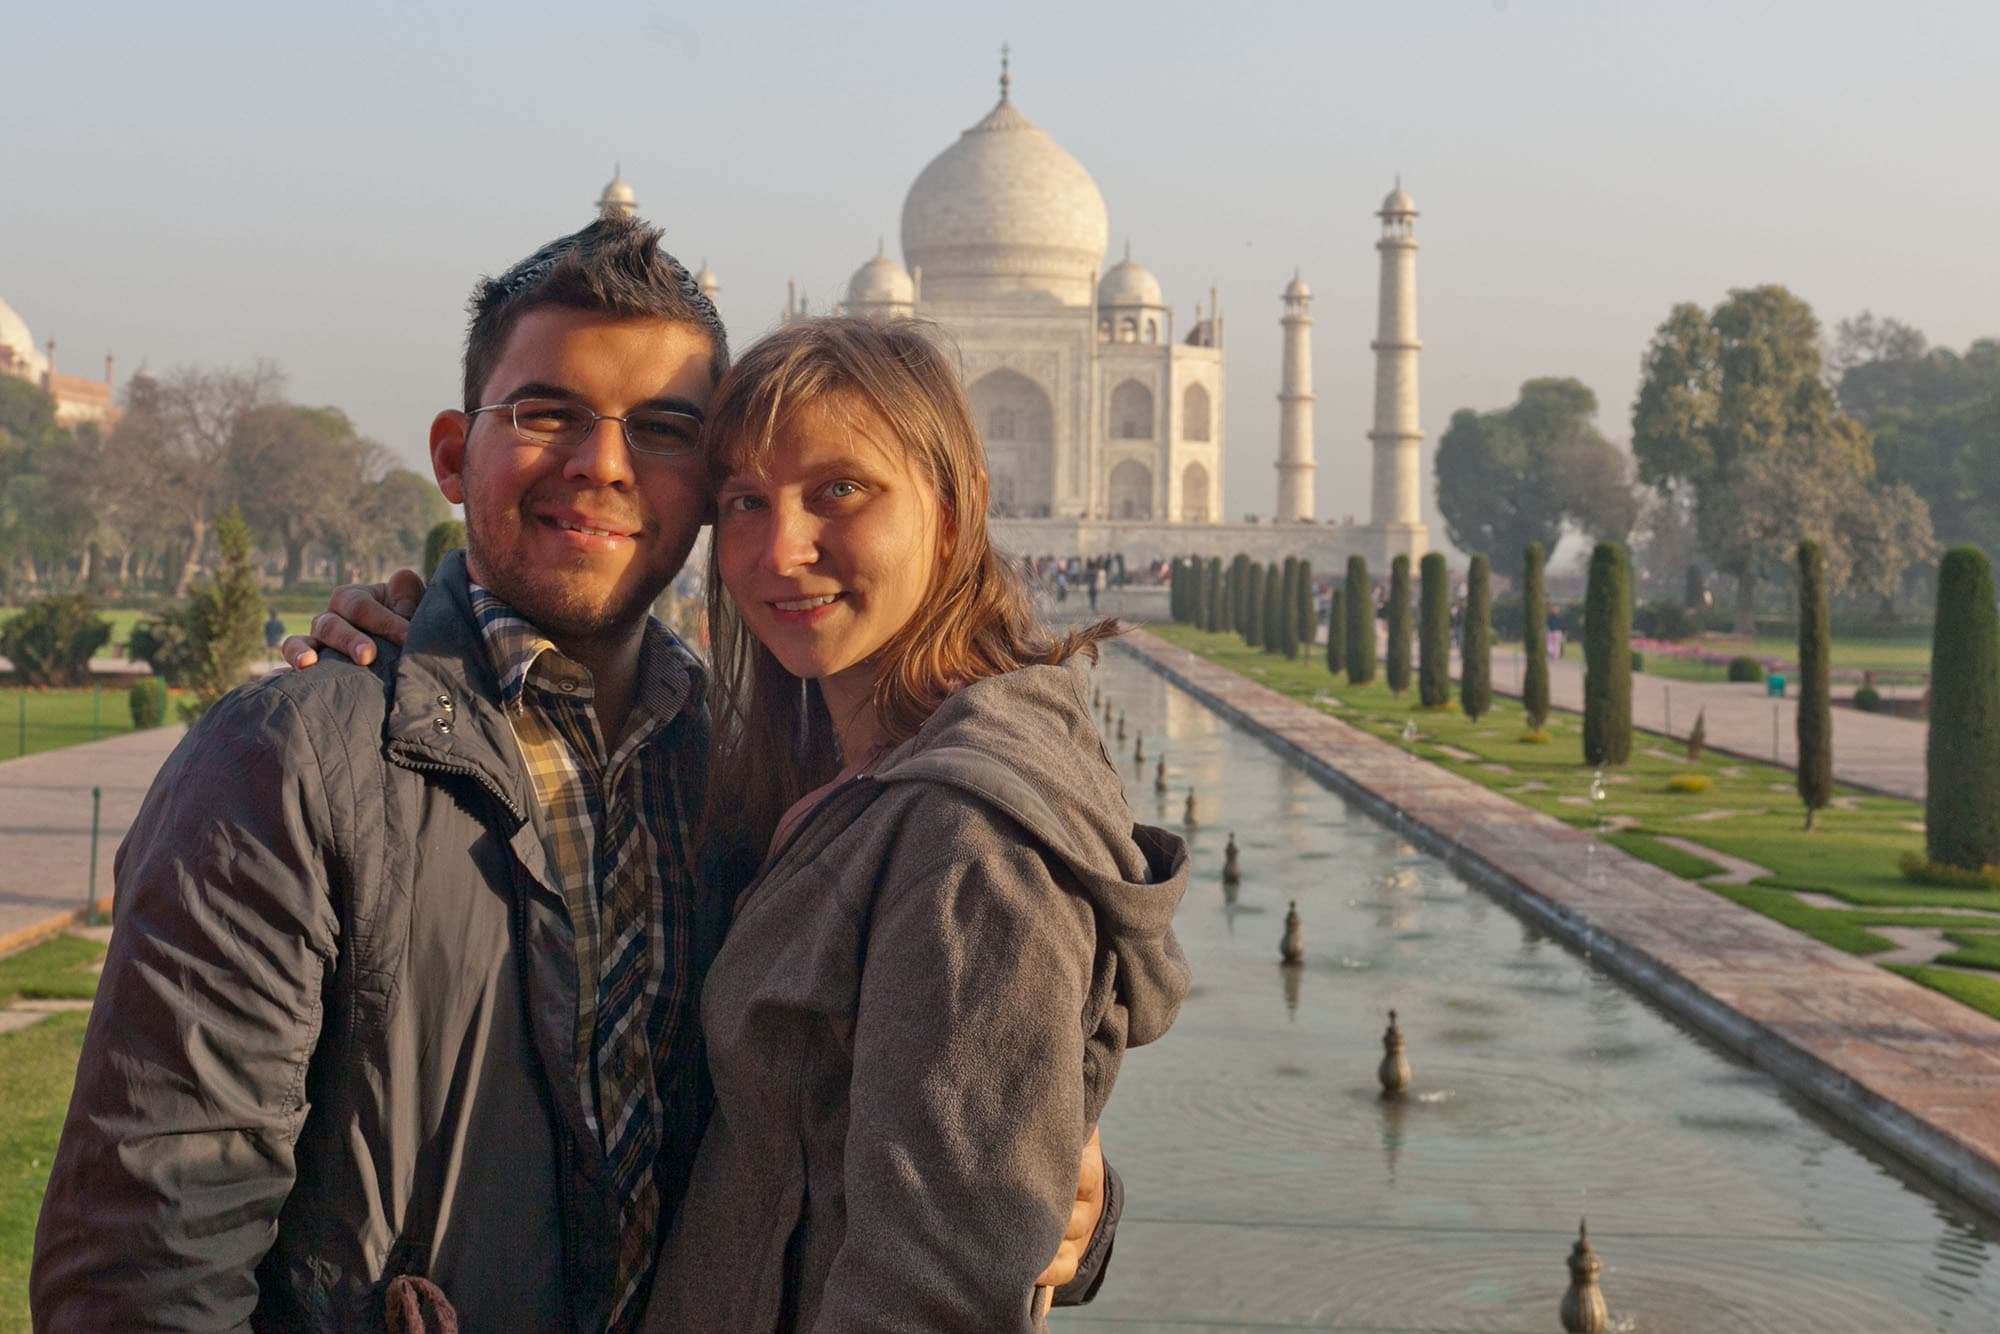 Me and Jaime at the Taj Mahal.